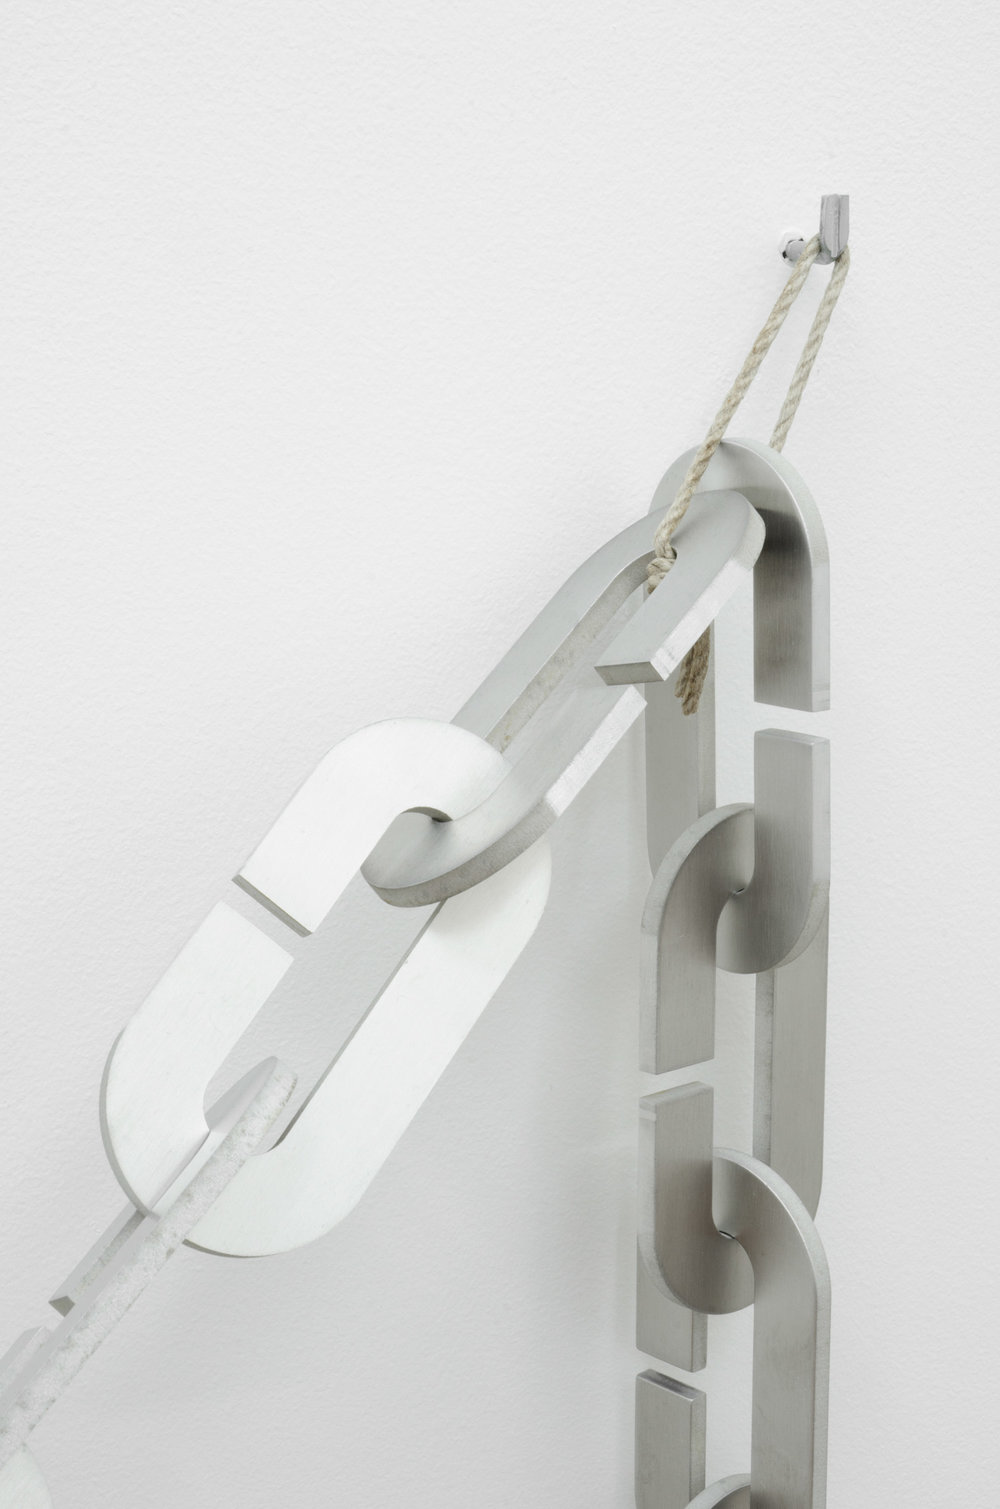 Harald Klingelhöller,  Streets After the Rain , 2012, aluminium and anodised aluminium, 120 x 500 x 135 cm (detail).